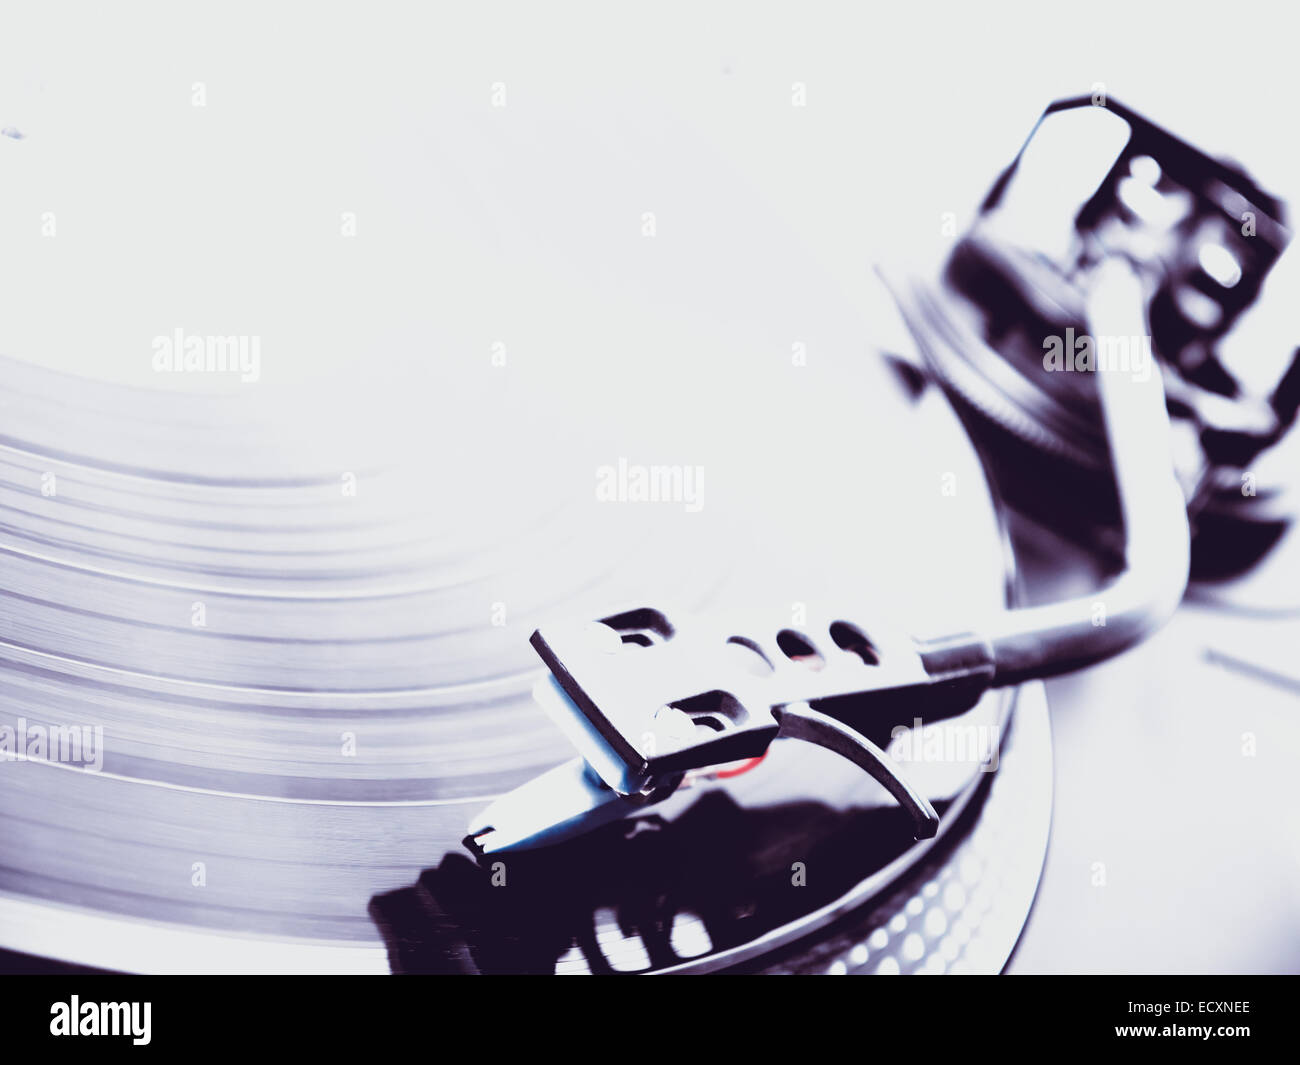 dj turntable plays music from a record Stock Photo